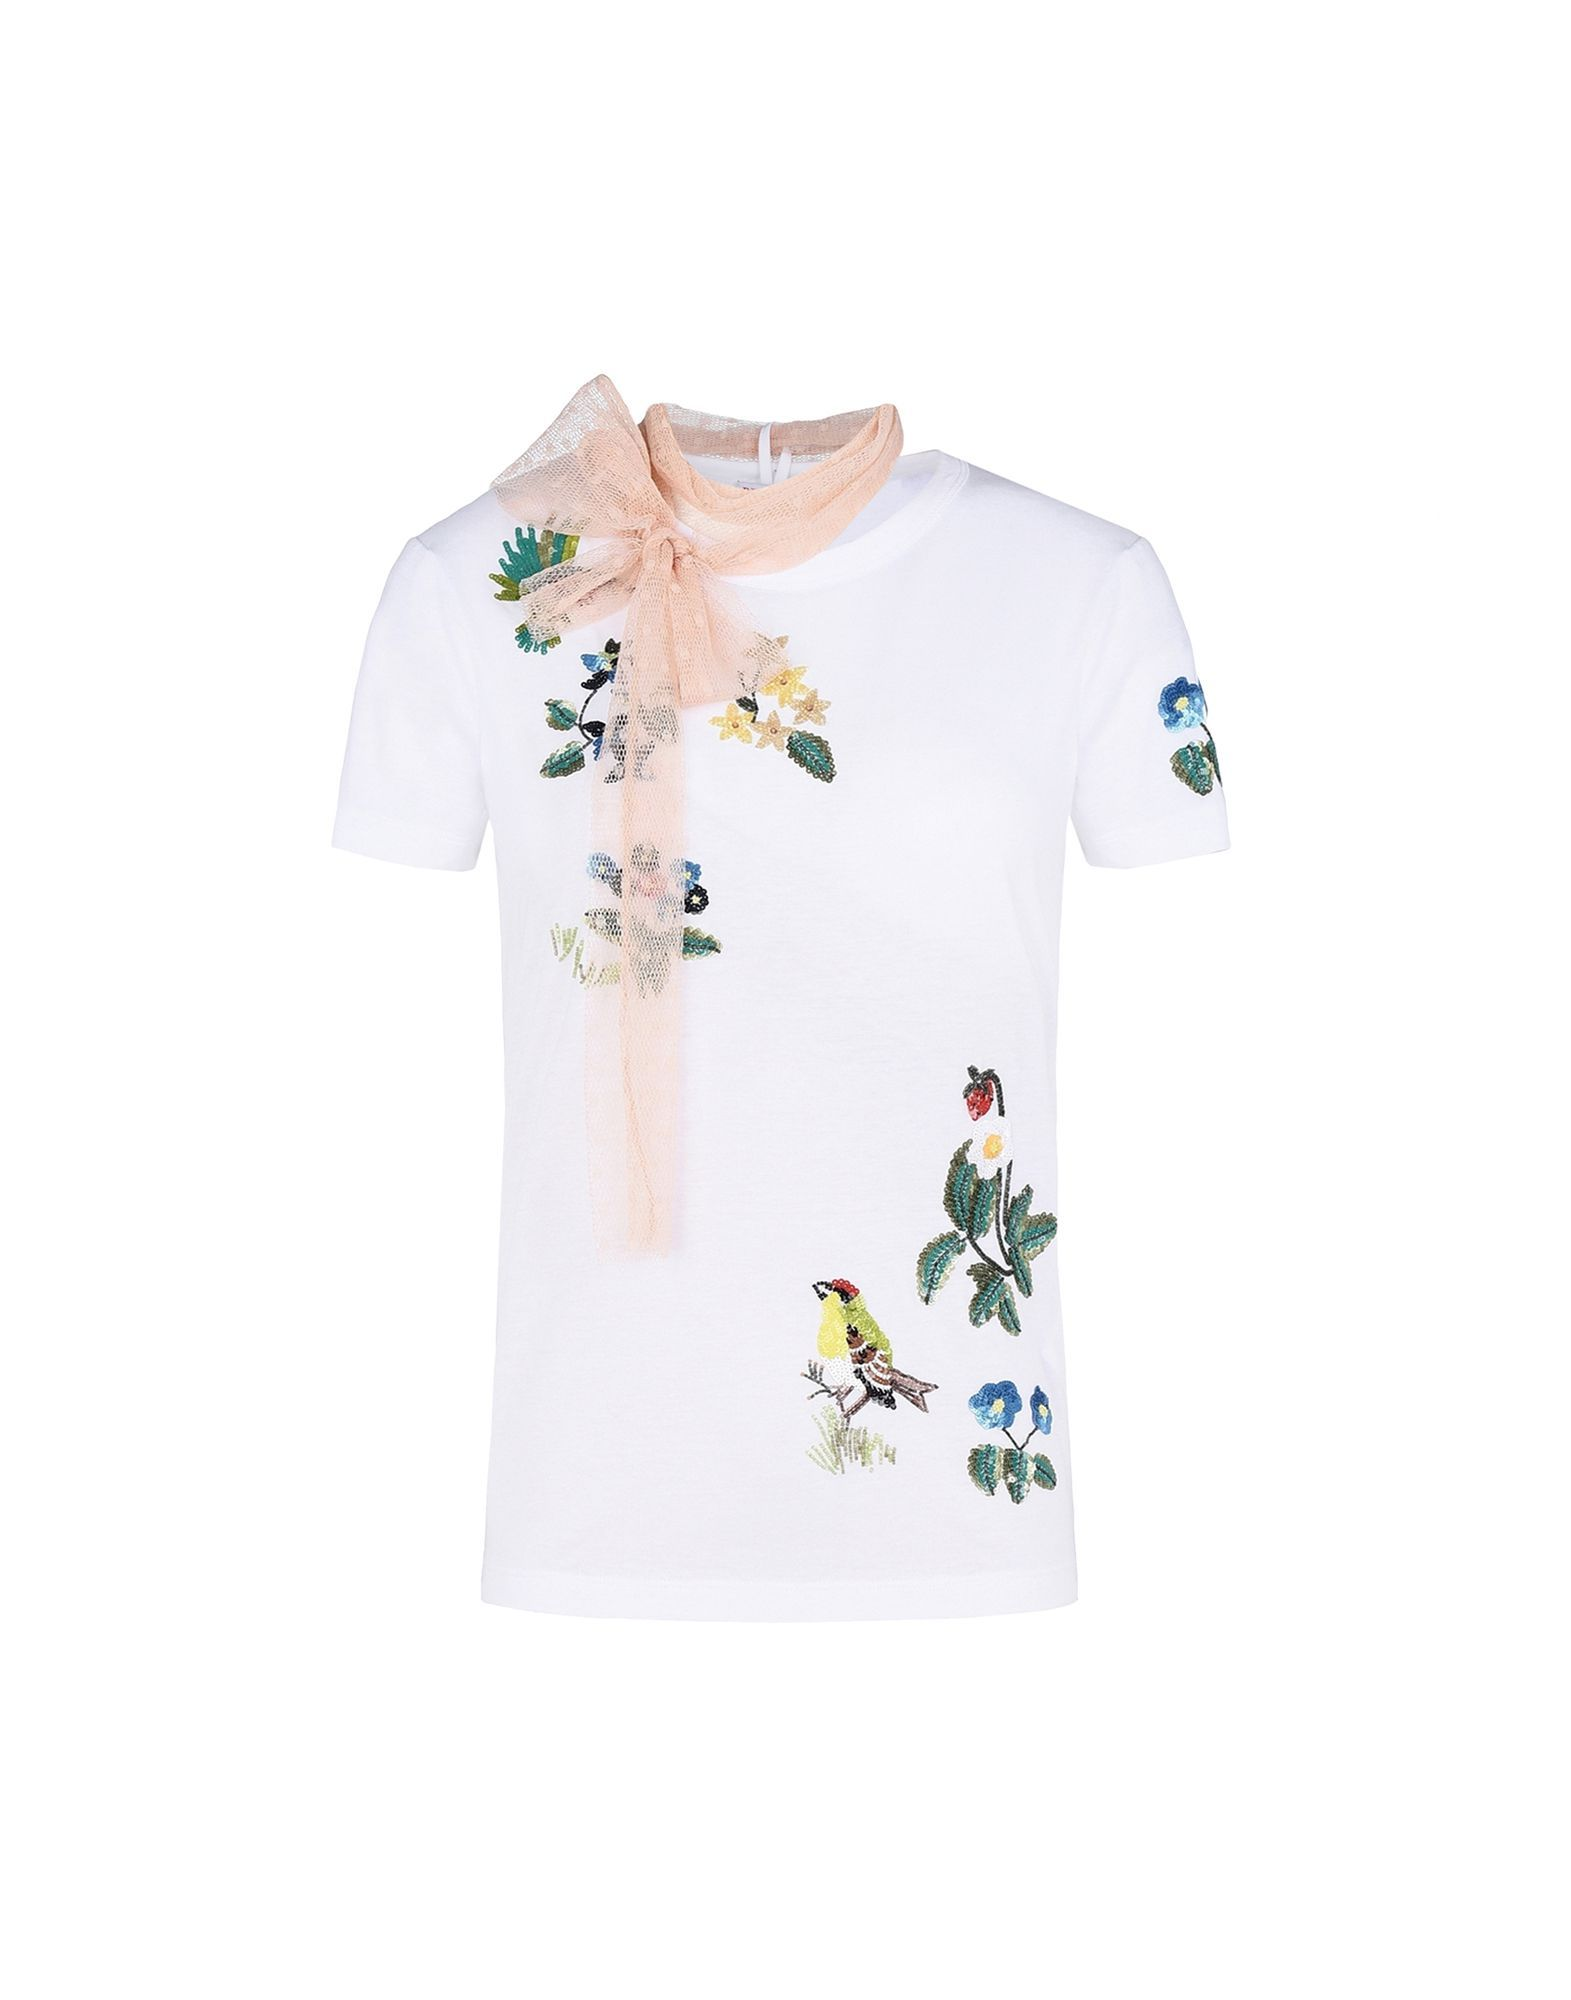 Red valentino flower and birds embroidered t shirt t for Red valentino t shirt